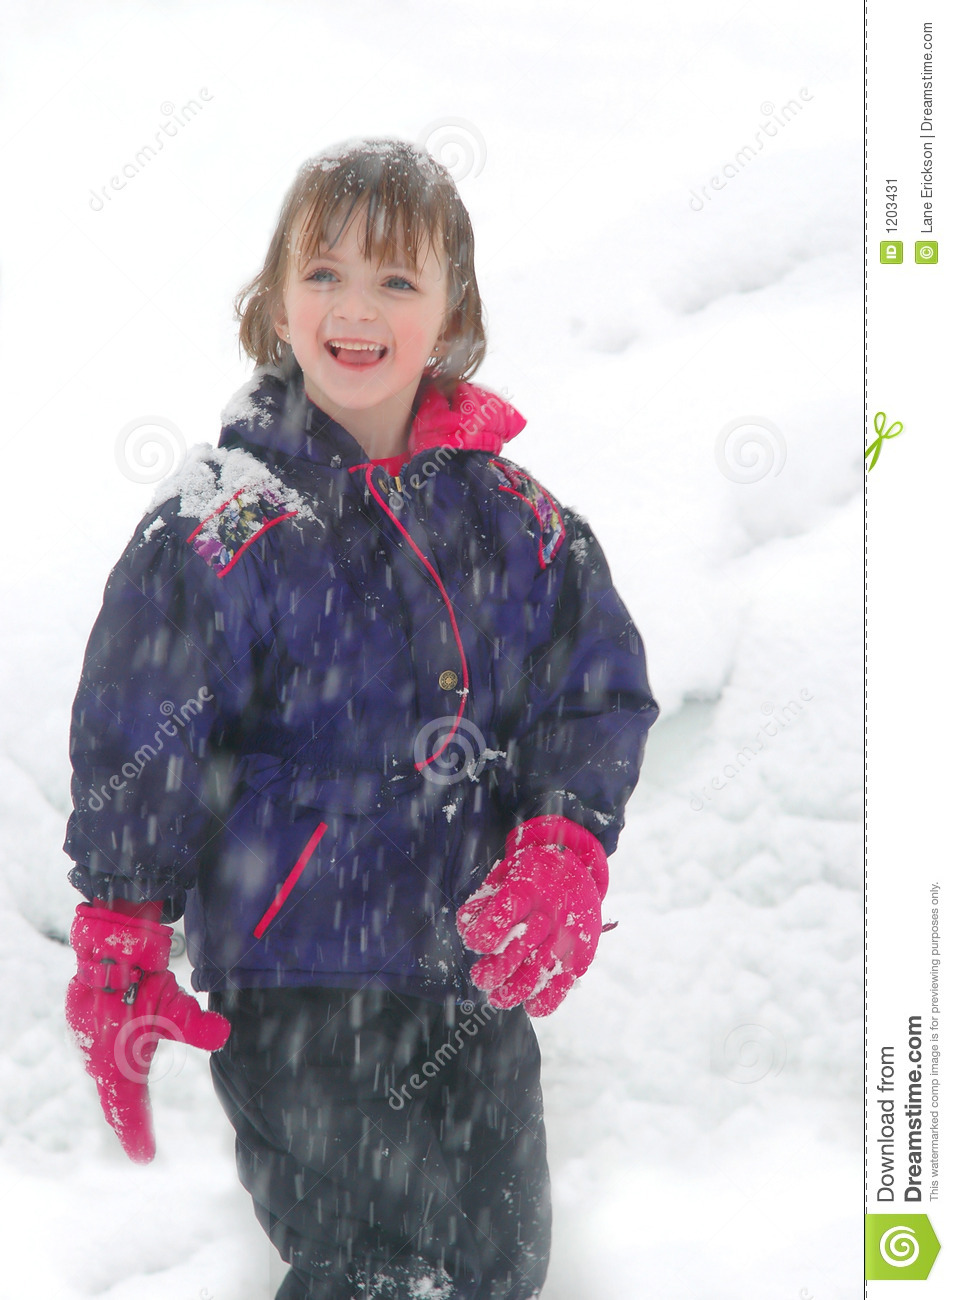 Young Girl Standing in Snow with Snow Falling